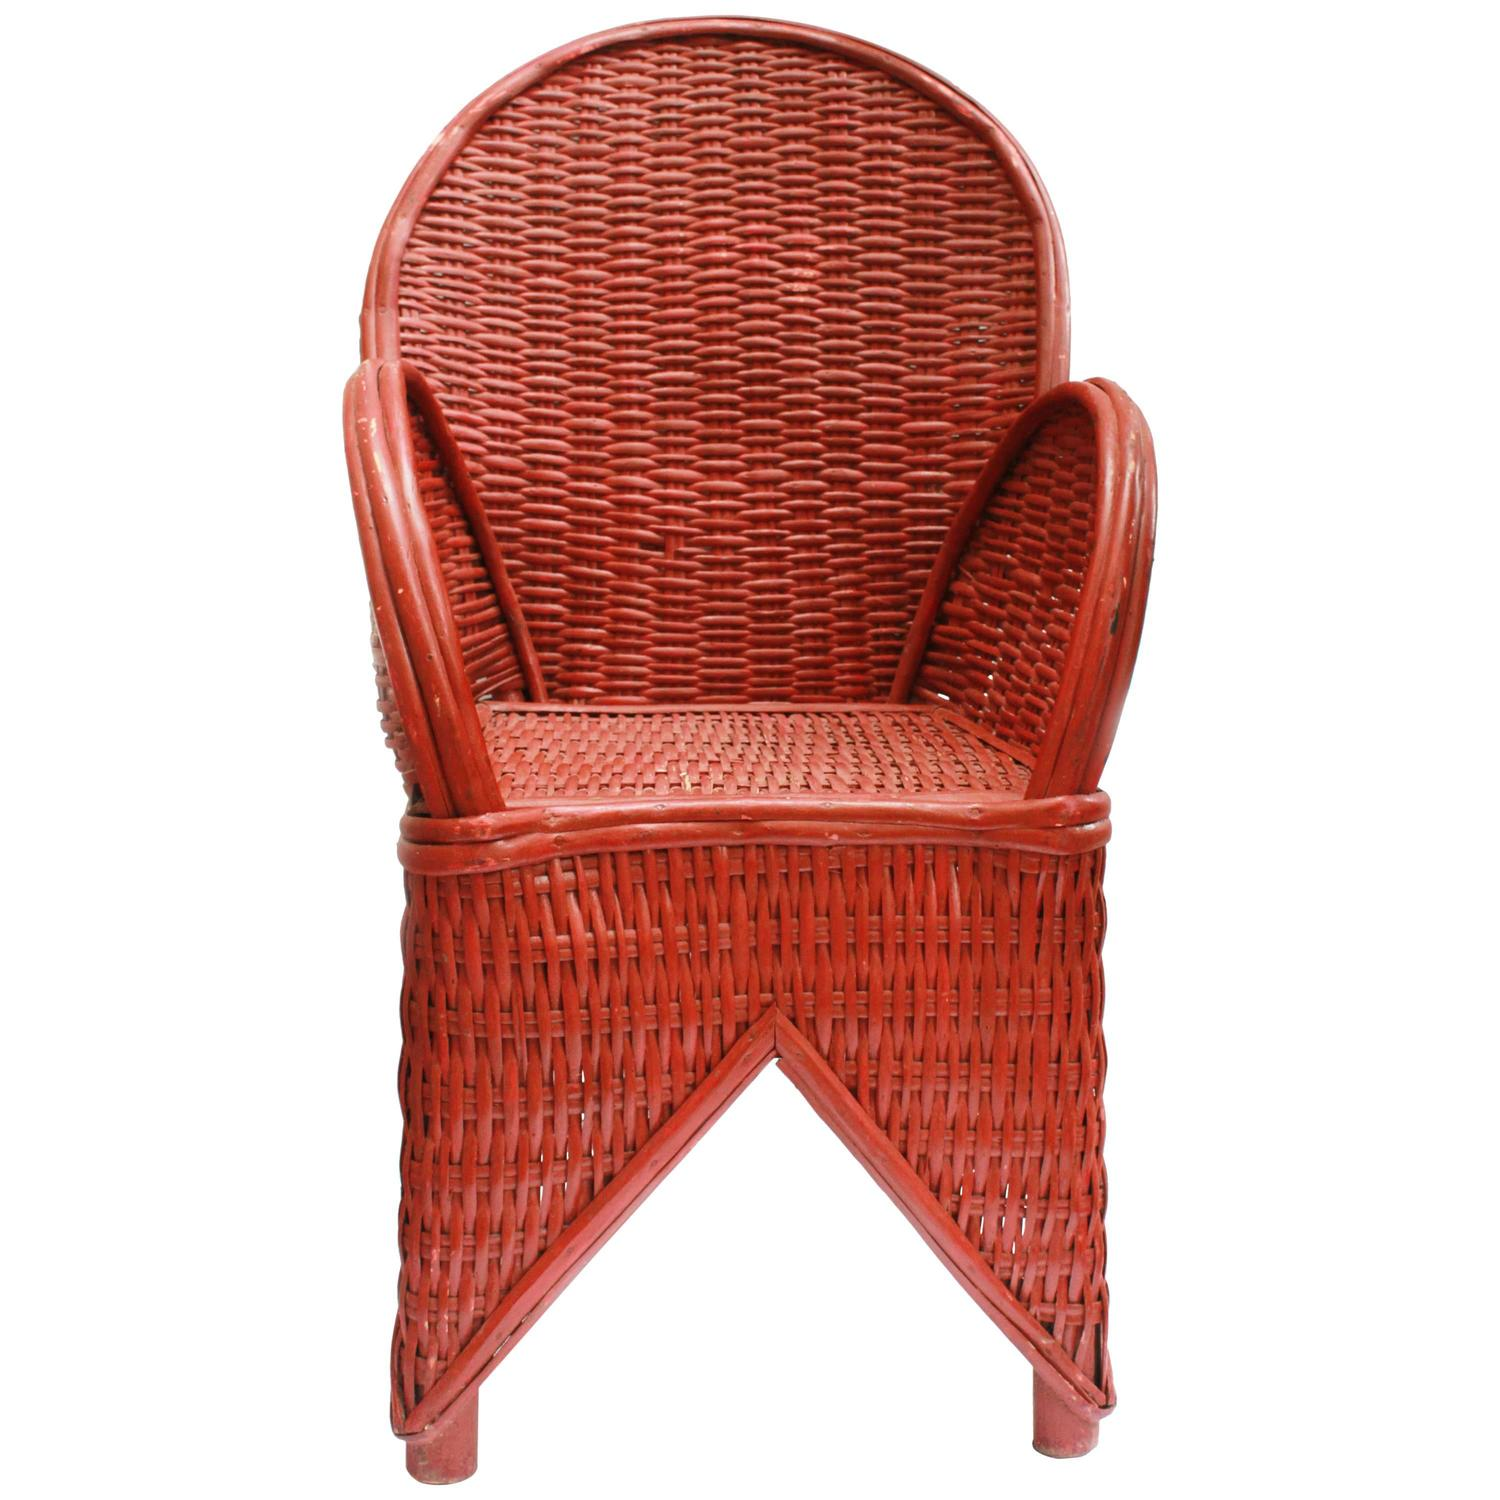 Made To Order Red Wicker Chair Handmade In Morocco At 1stdibs